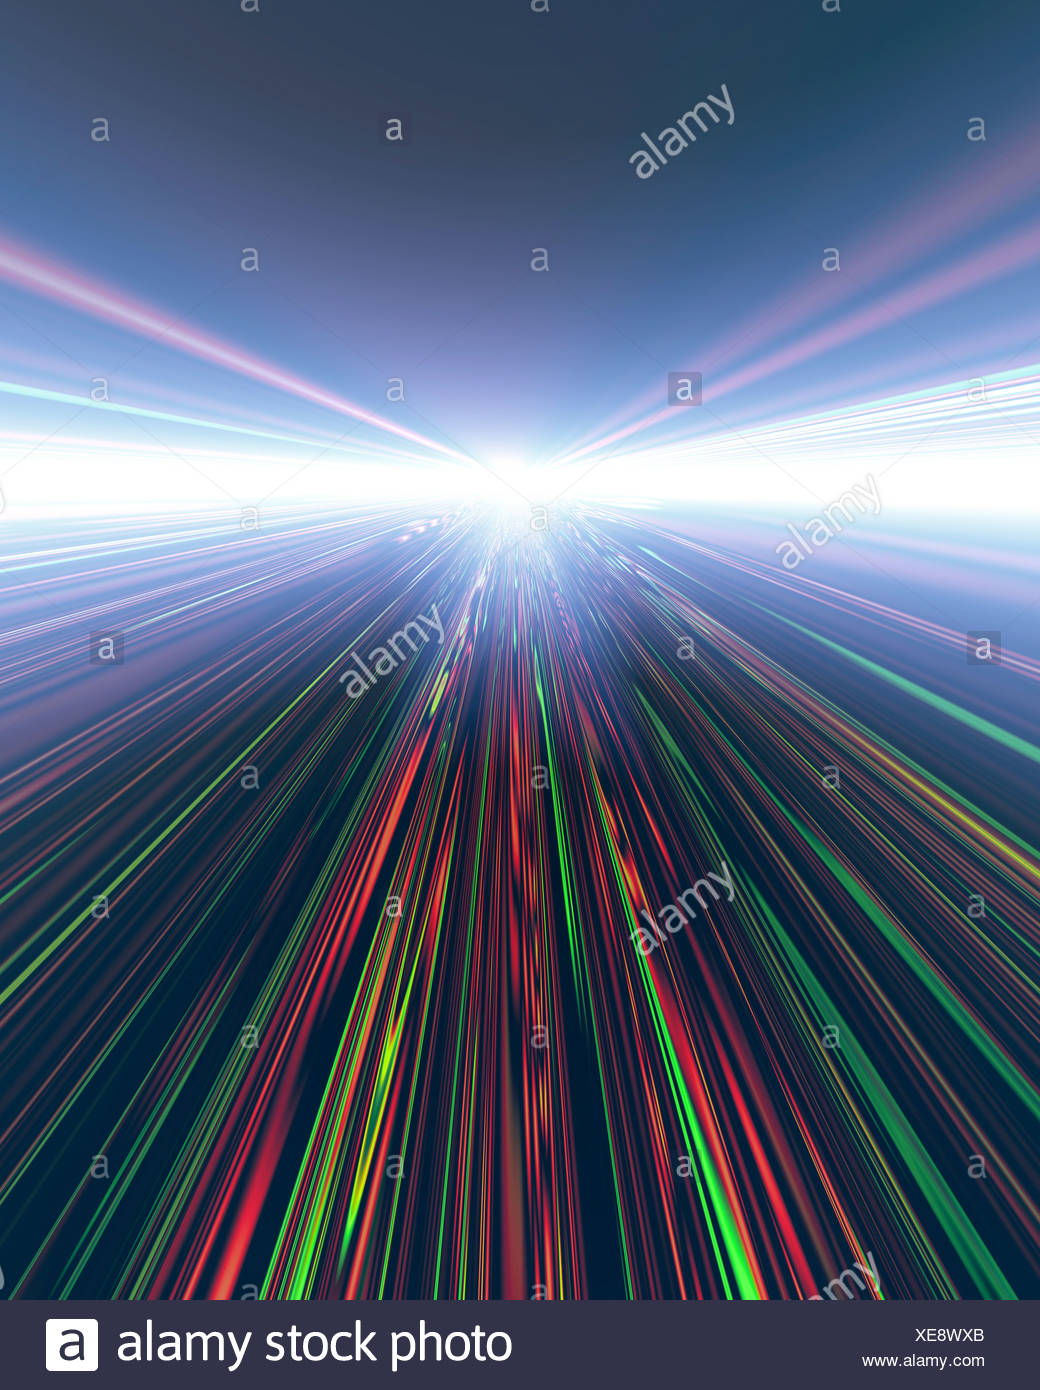 Abstract multi colored patterns (digitally generated) - Stock Image